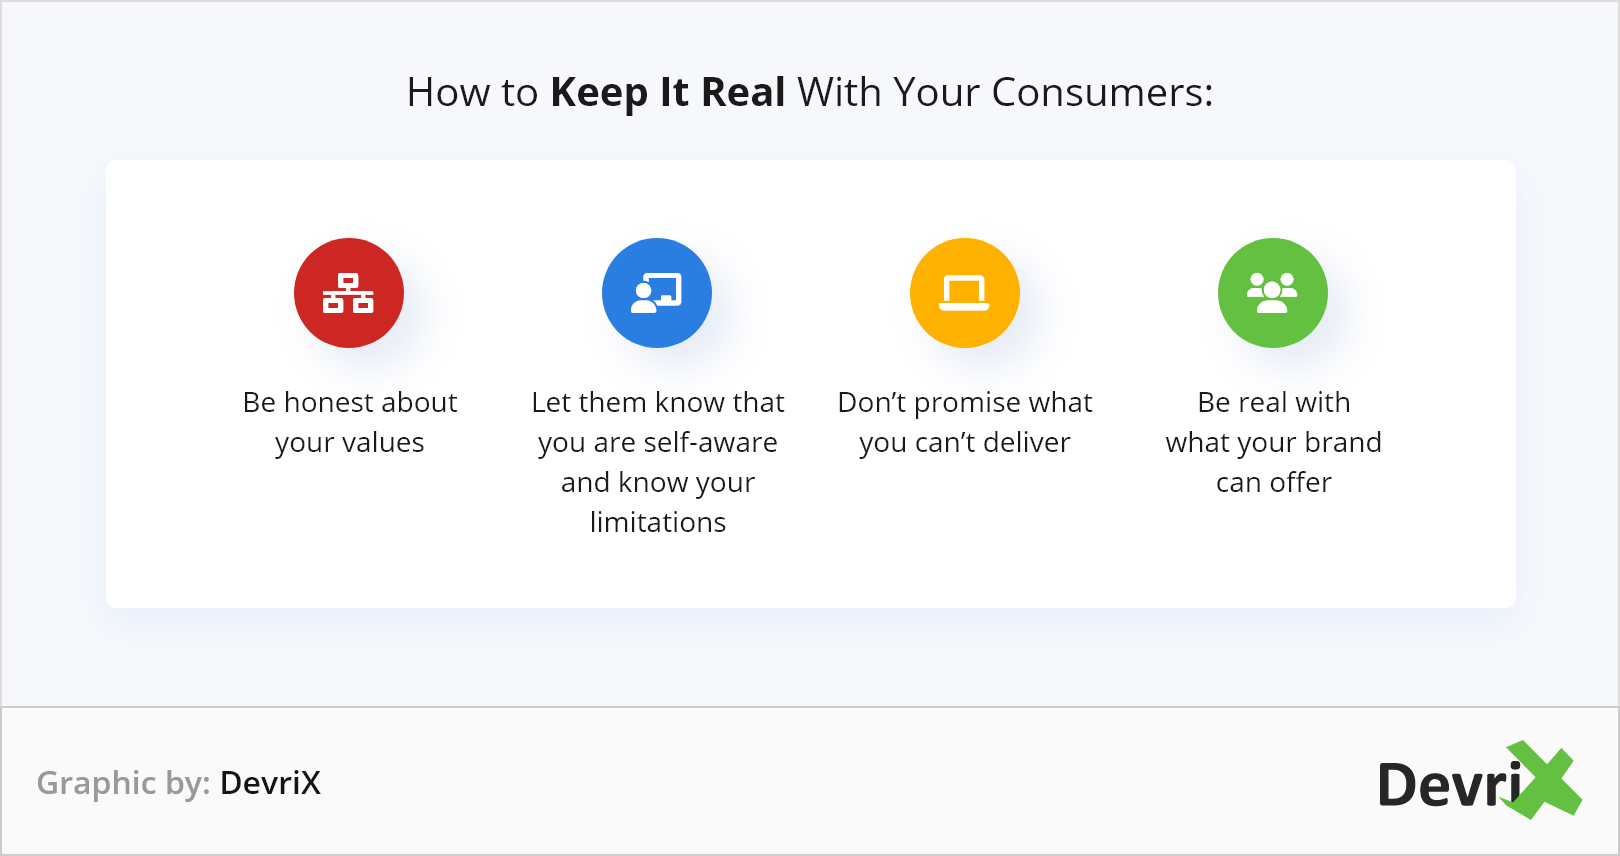 How to Keep It Real With Your Consumers